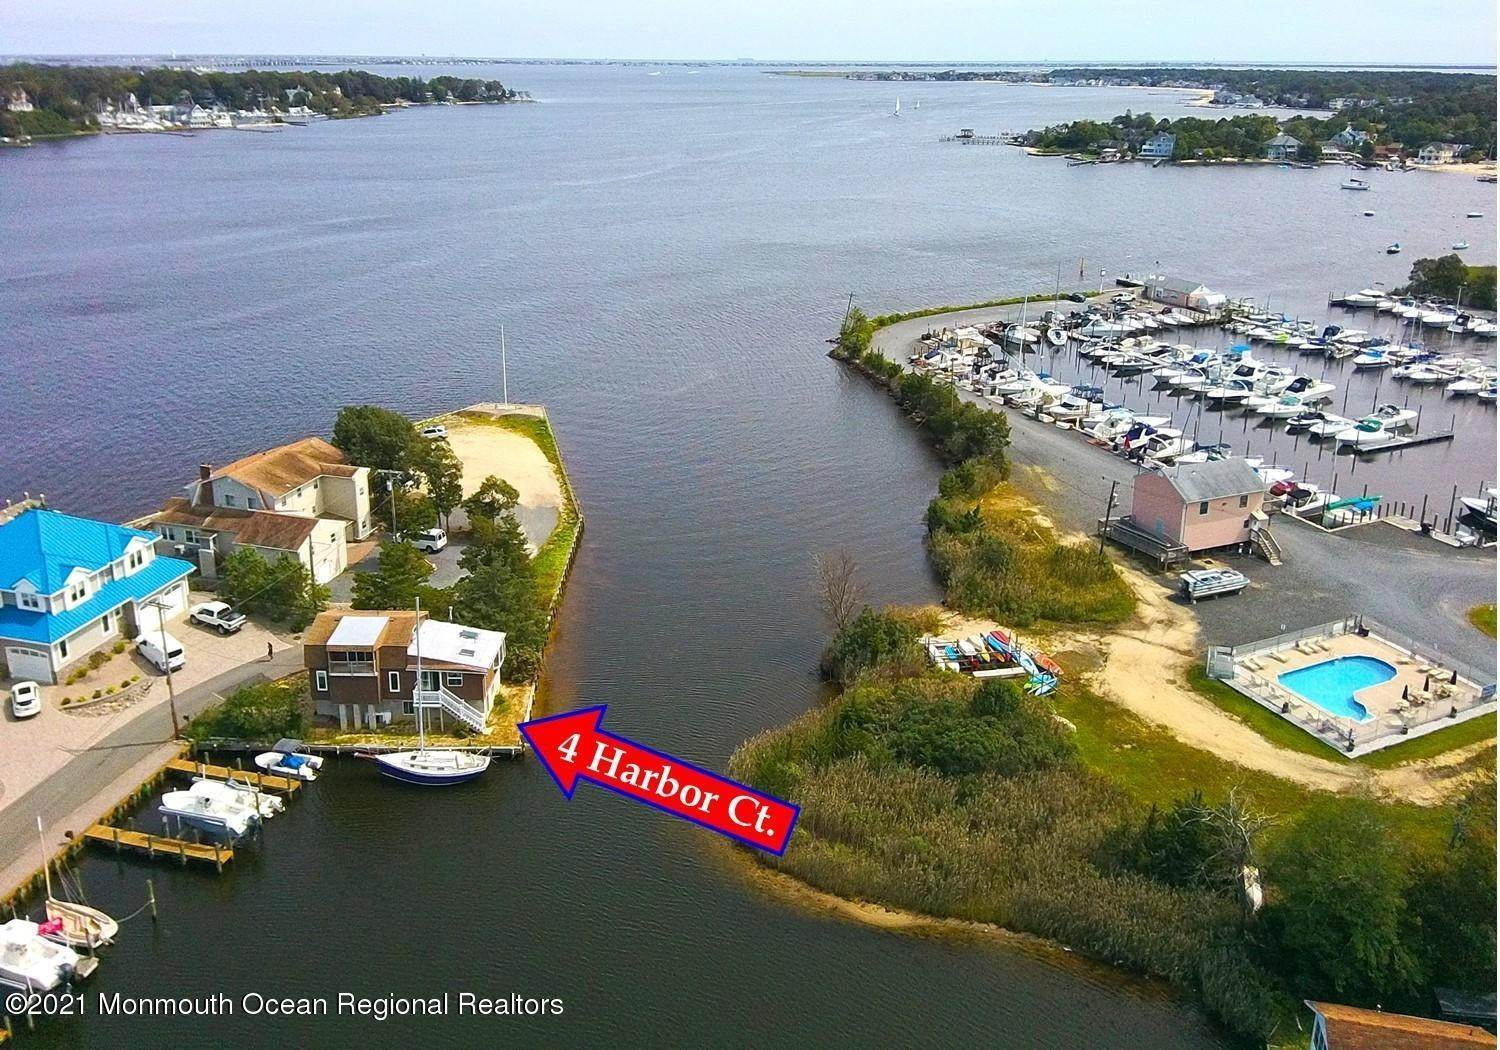 Single Family Homes for Sale at 4 Harbor Court Pine Beach, New Jersey 08741 United States